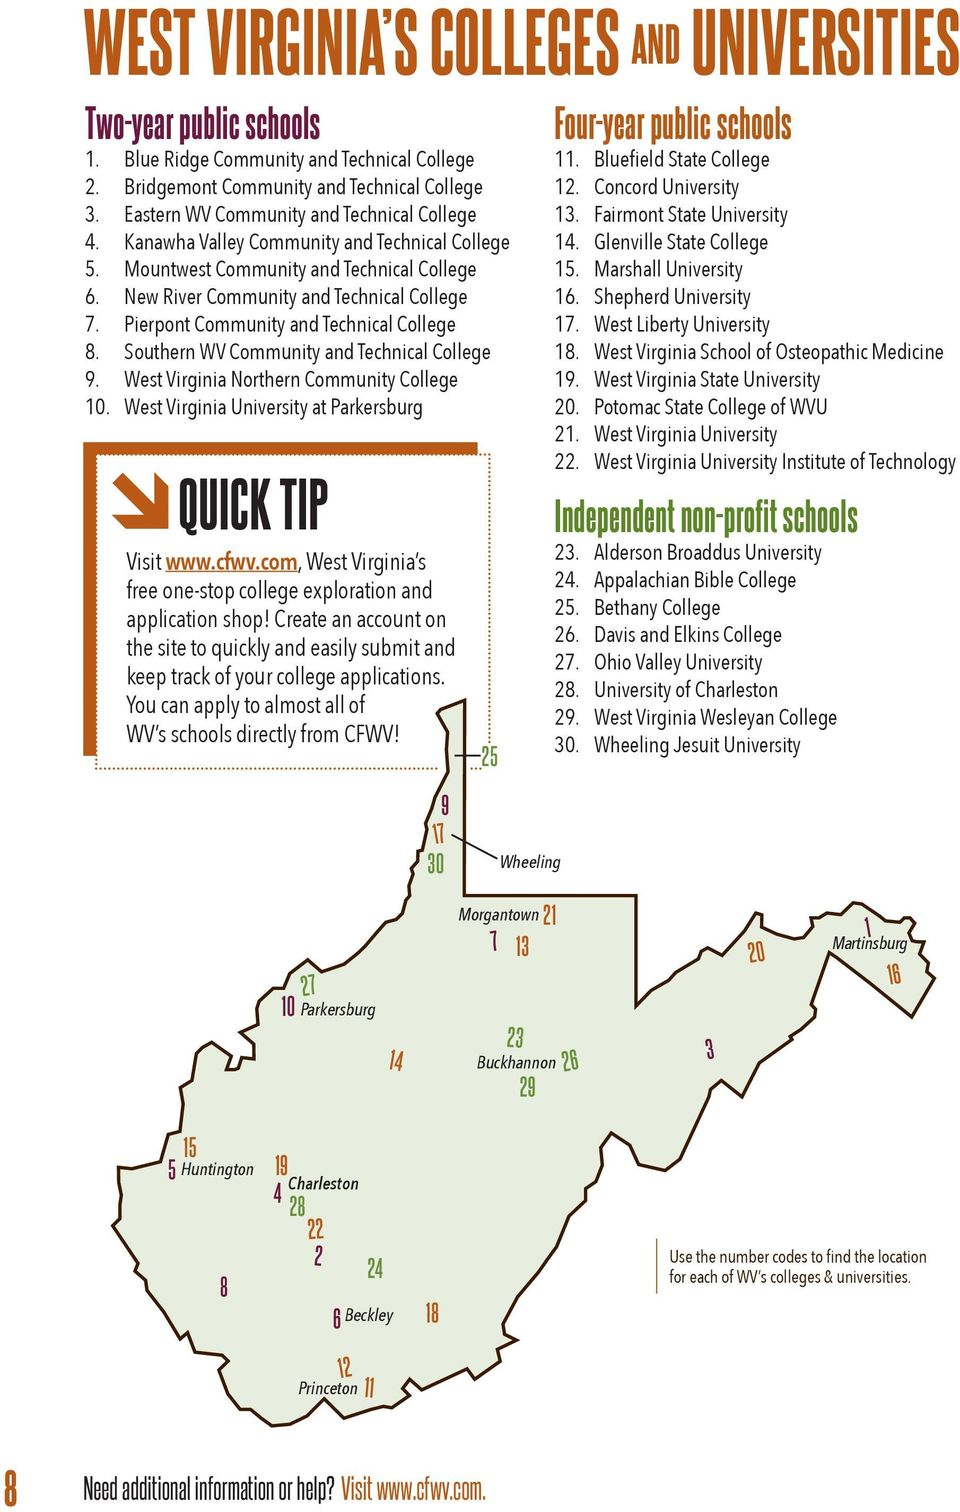 Pierpont Community and Technical College 8. Southern WV Community and Technical College 9. West Virginia Northern Community College 10. West Virginia University at Parkersburg QUICK TIP Visit www.